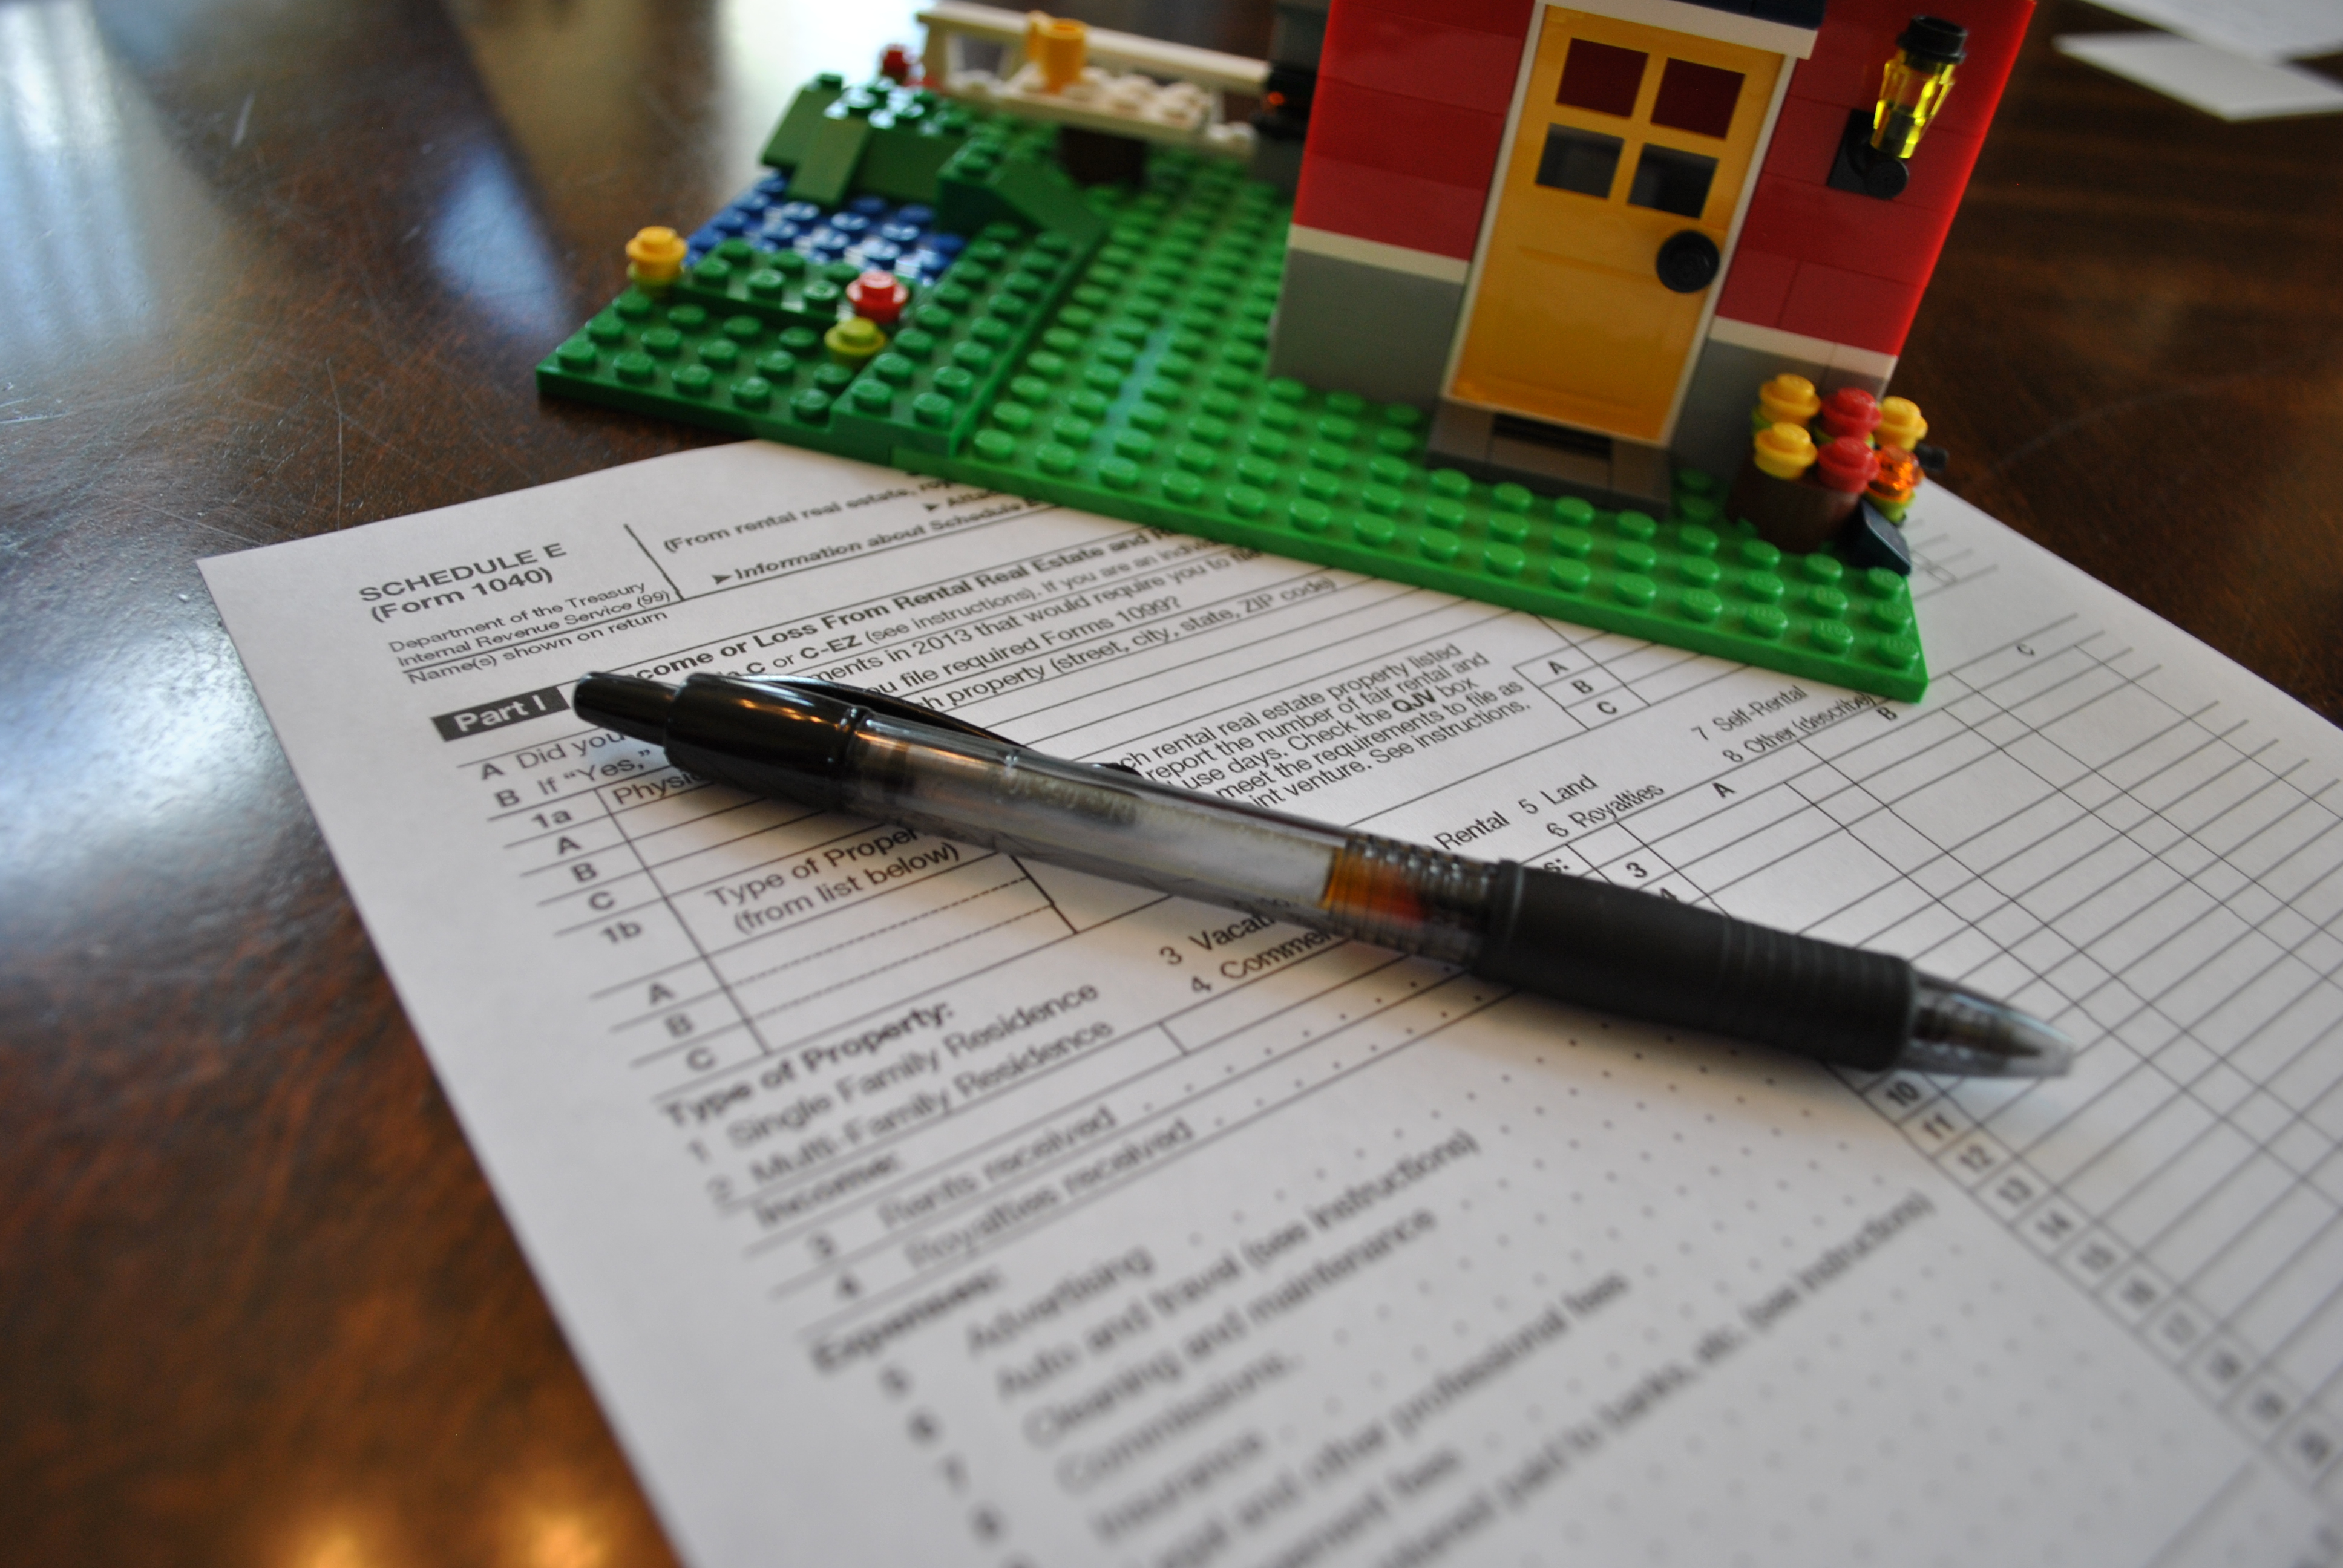 Schedule E Irs Form Image Collections